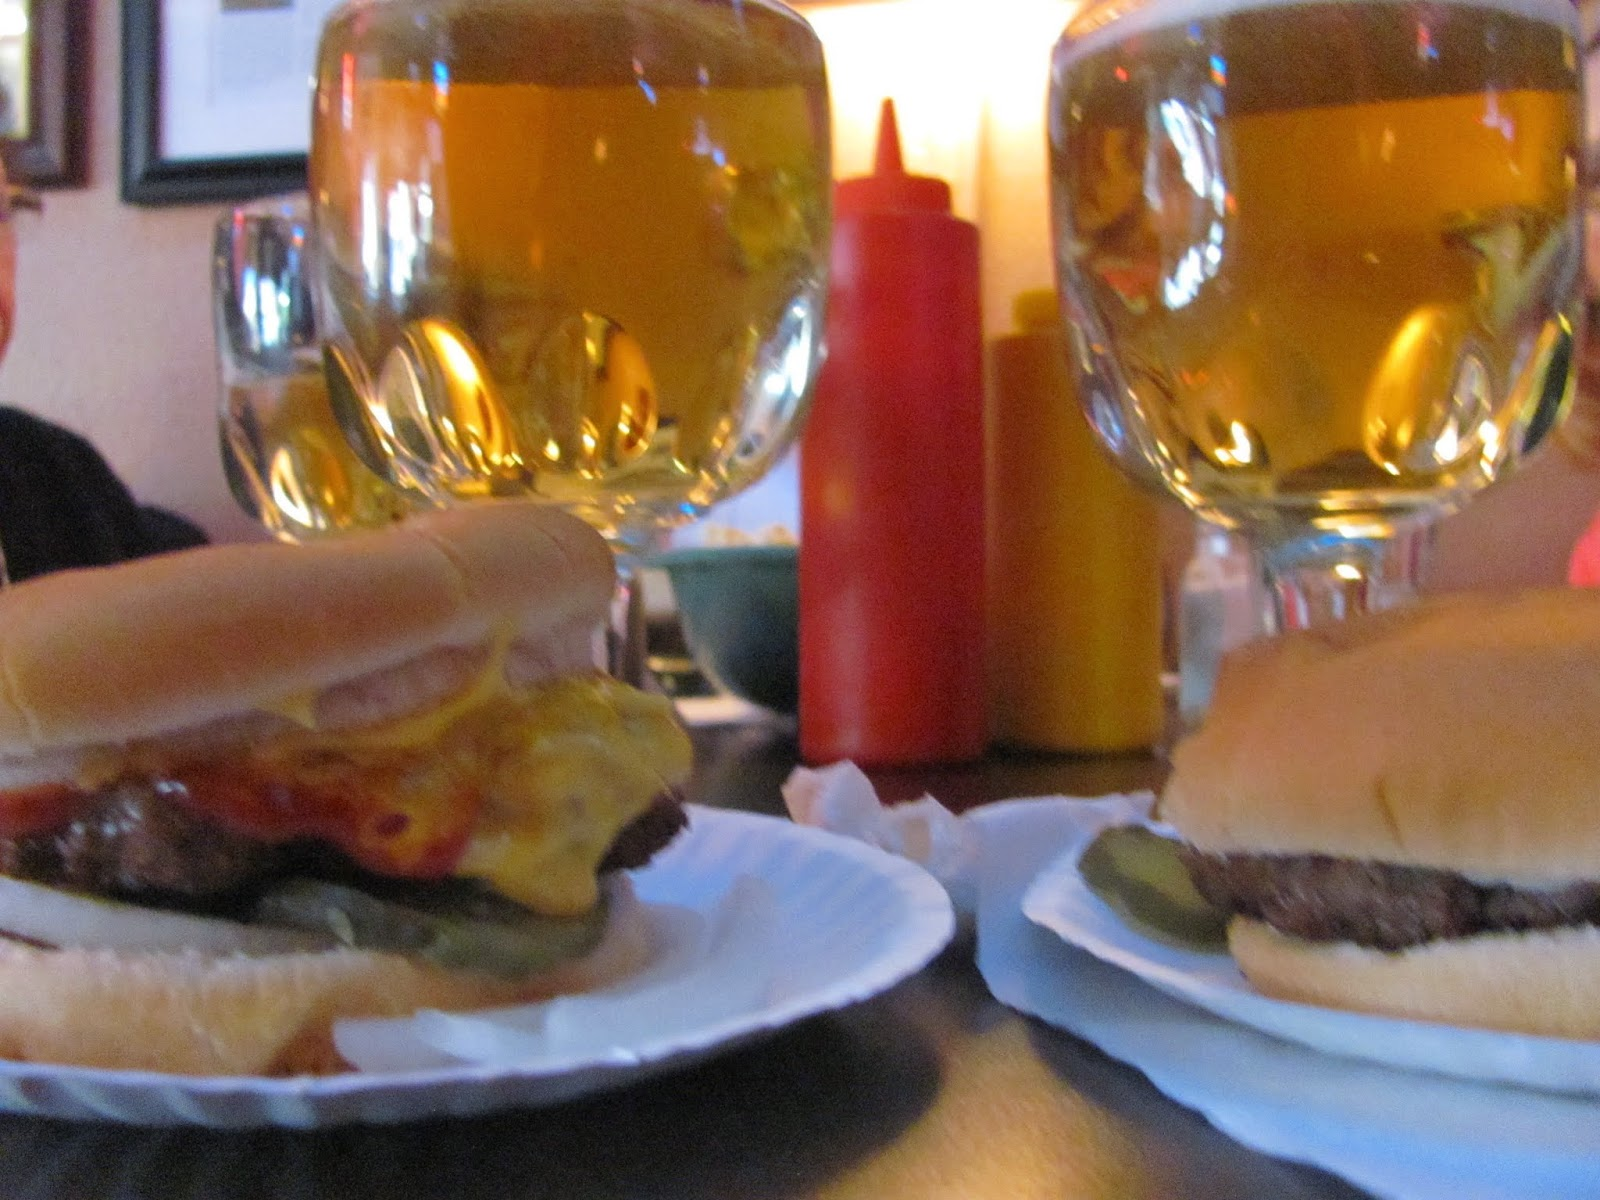 Cheap Burgers and Cheap Beers at Paul's